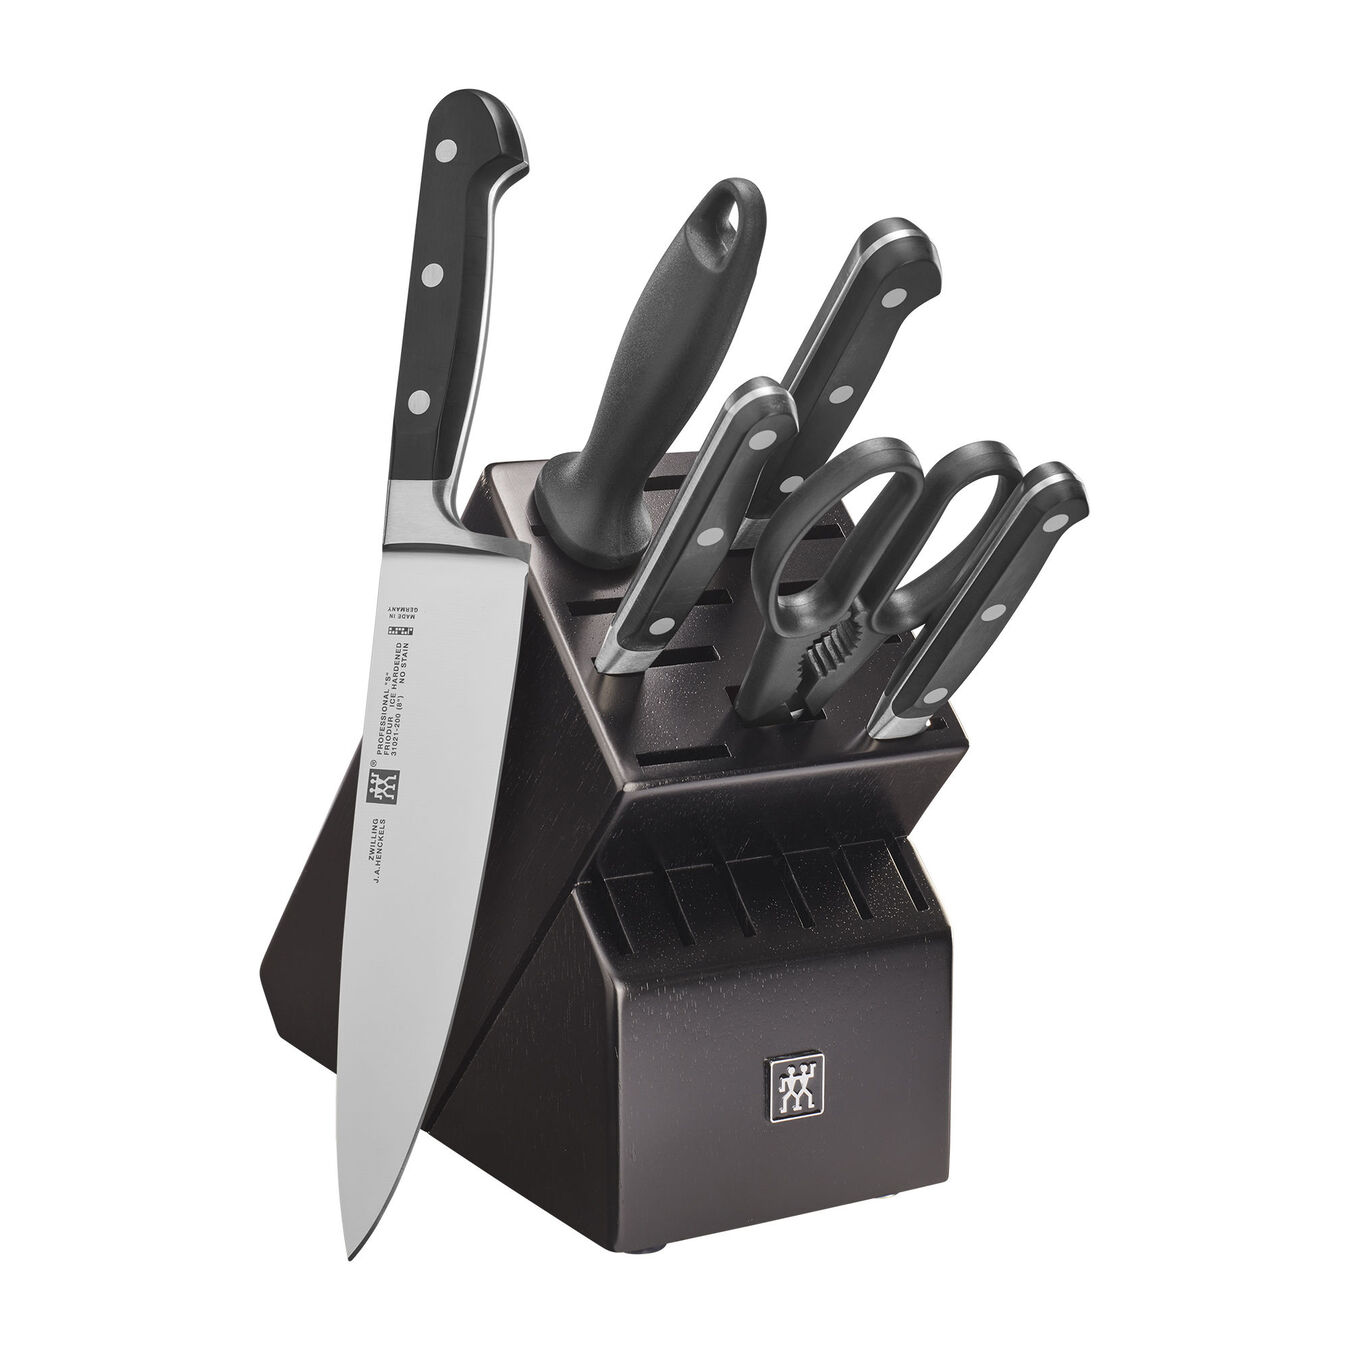 7-pc, Knife block set, Black Matte,,large 1